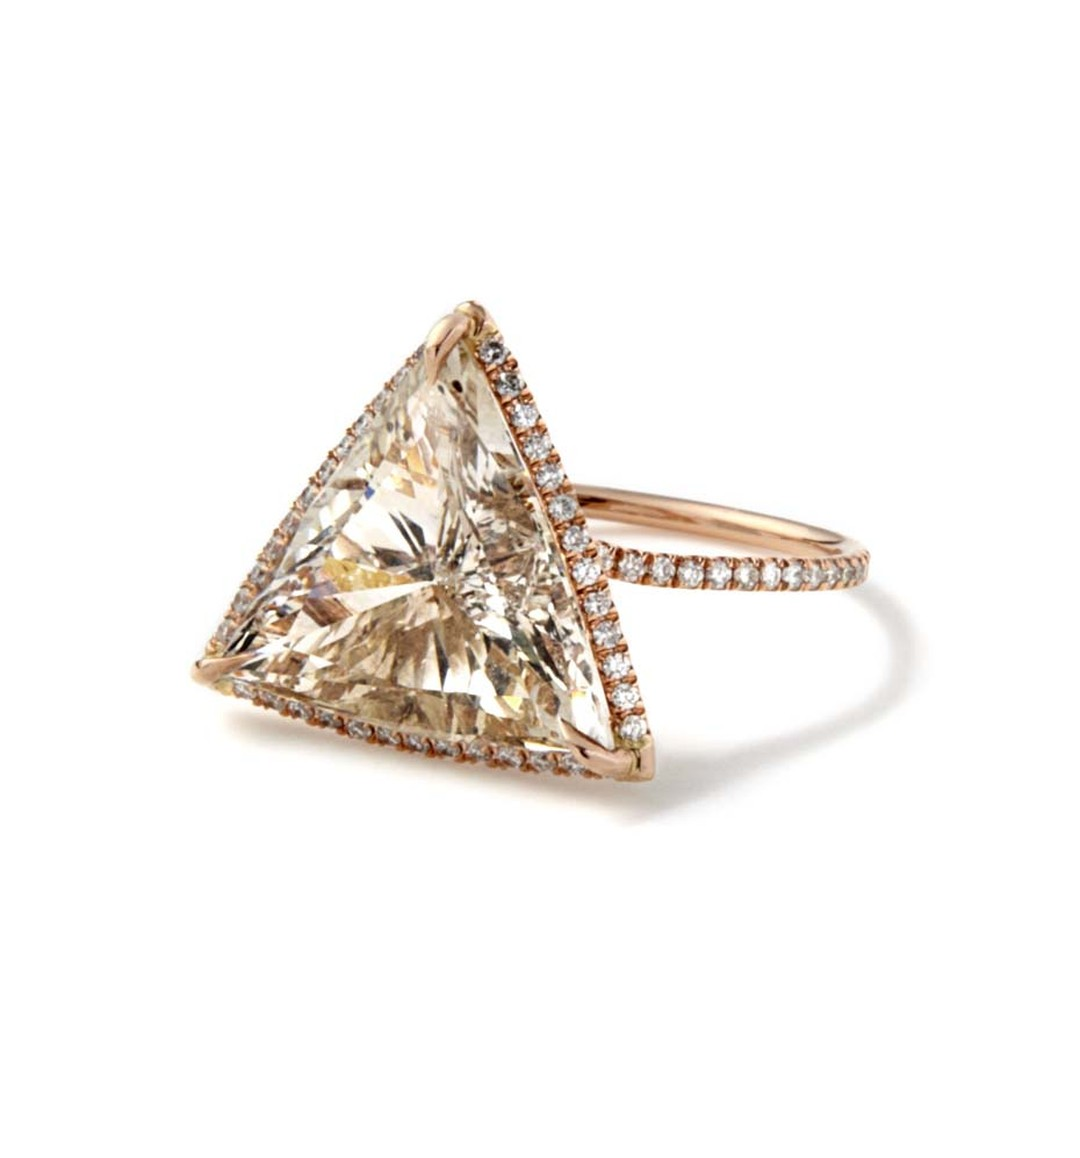 Monique Péan recycled rose gold engagement ring